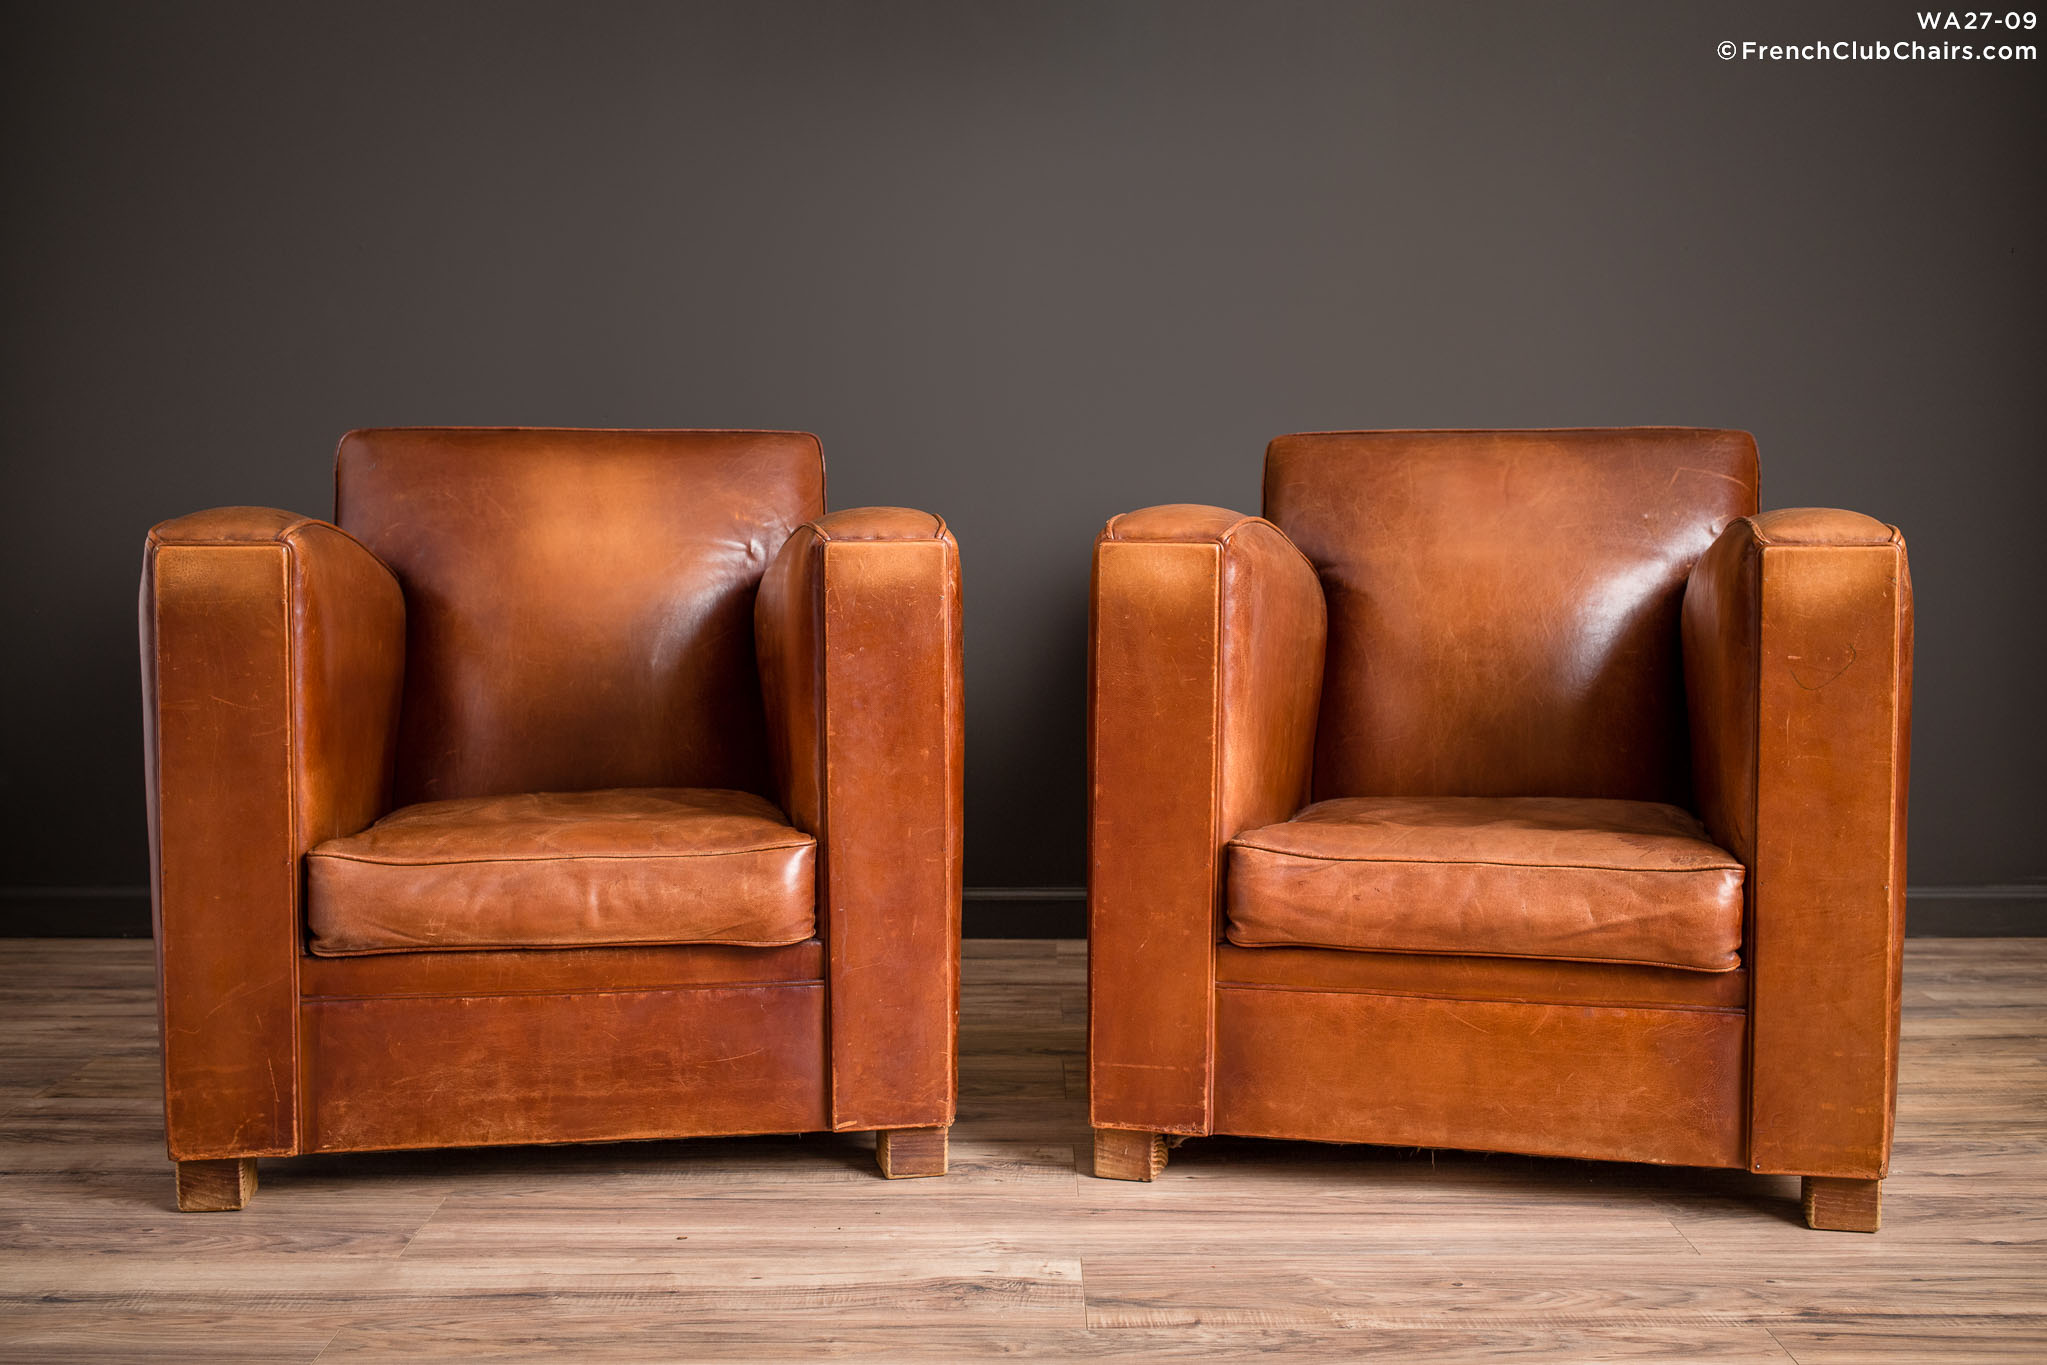 WA_27-09_Christophe_Paquebot_Pair_R_1TQ-v01-williams-antiks-leather-french-club-chair-wa_fcccom